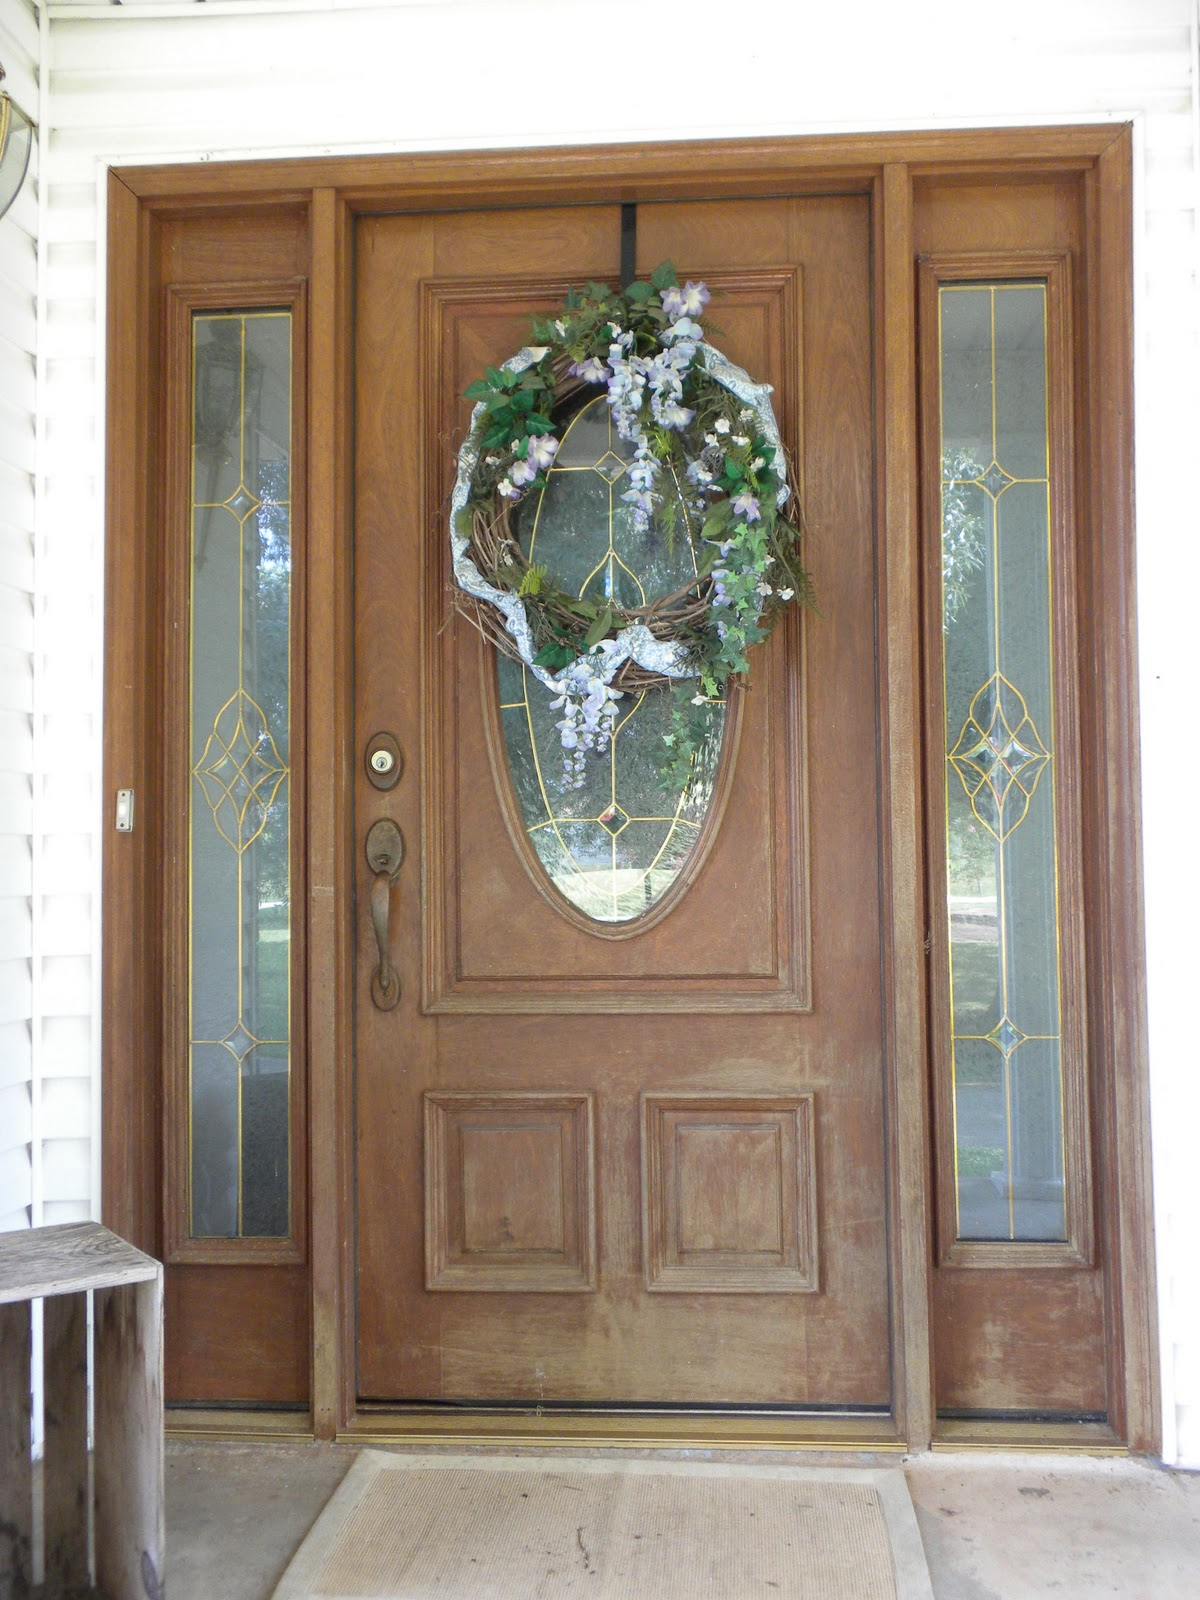 1600 #694935 Painted Front Door With Sidelights The Front Door Looked Like It picture/photo Painted Front Doors With Sidelights 41891200